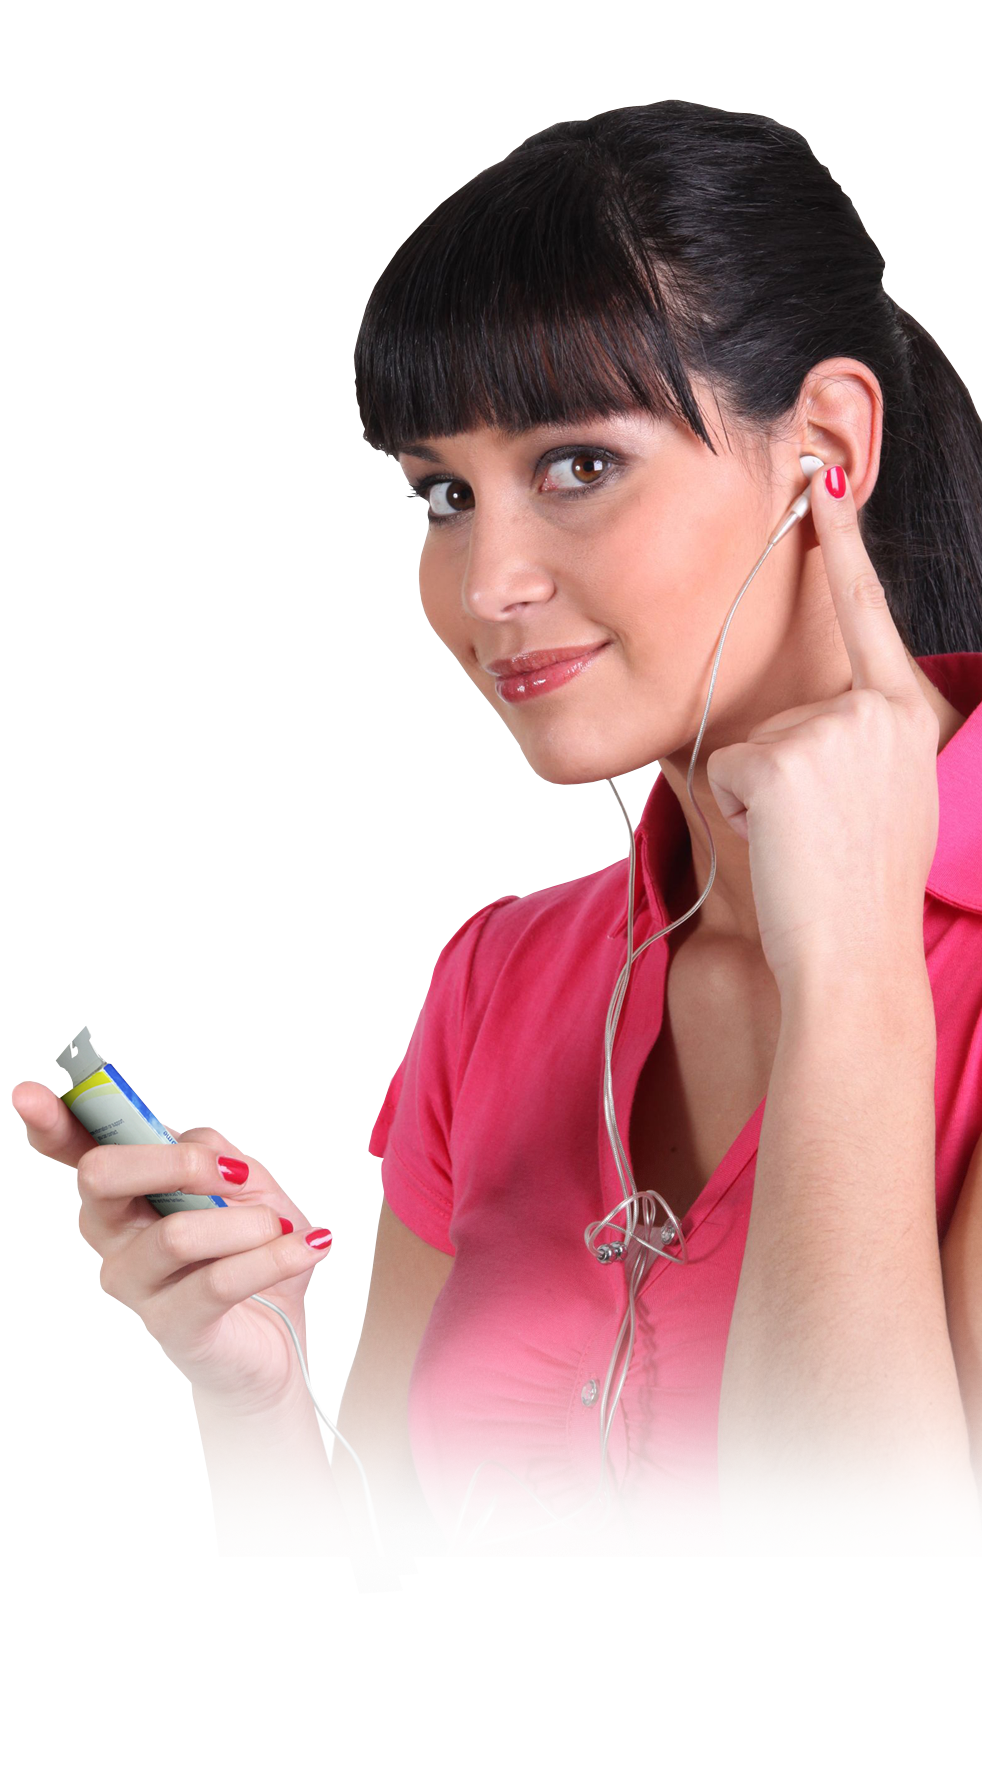 woman and audio